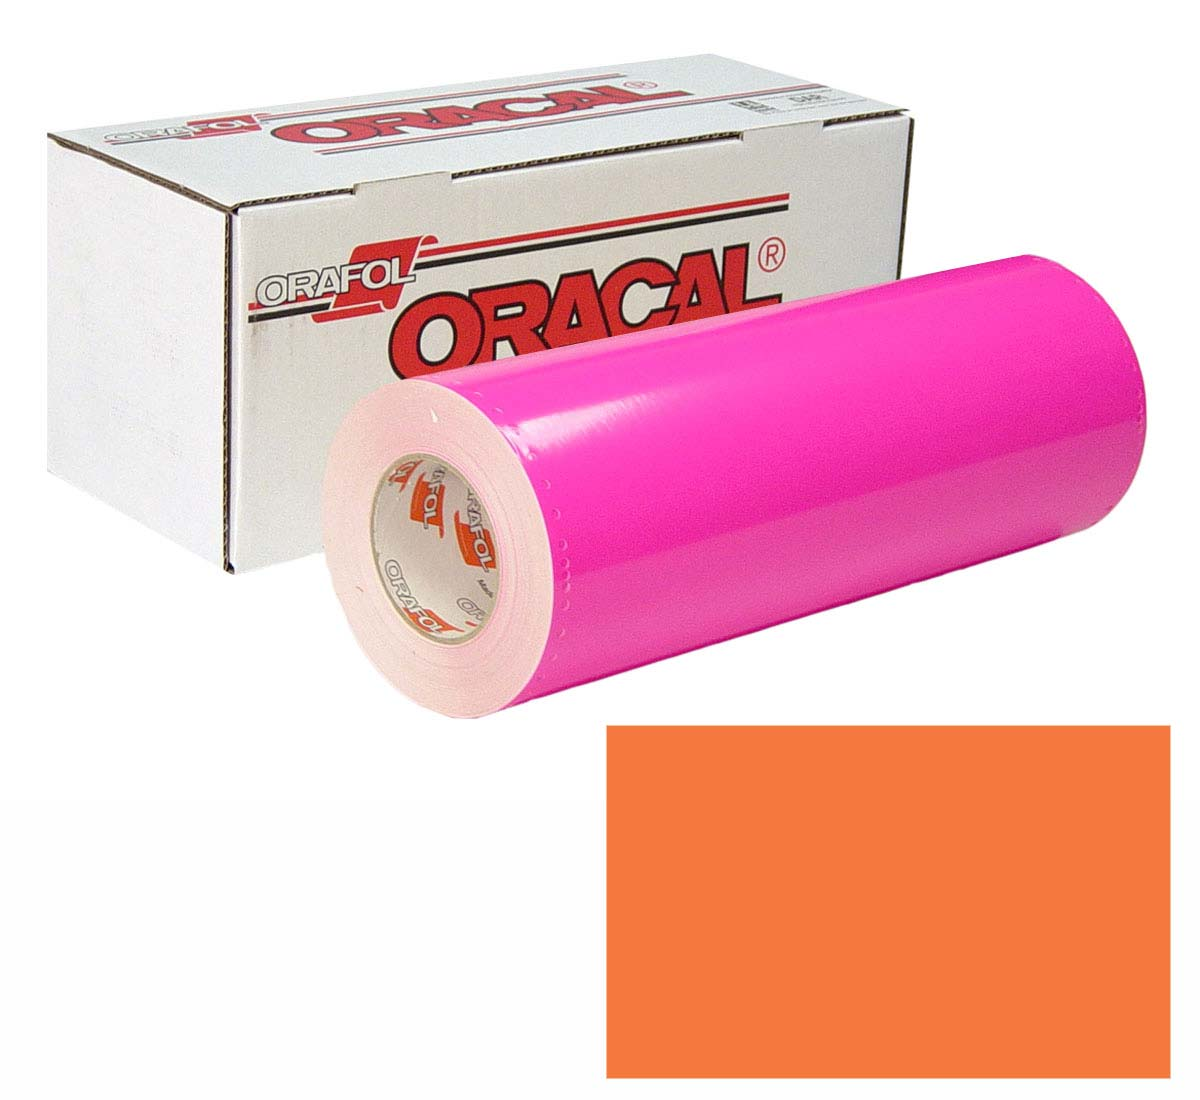 ORACAL 7510 Fluor Unp 24In X50Yd 038 Red Orng